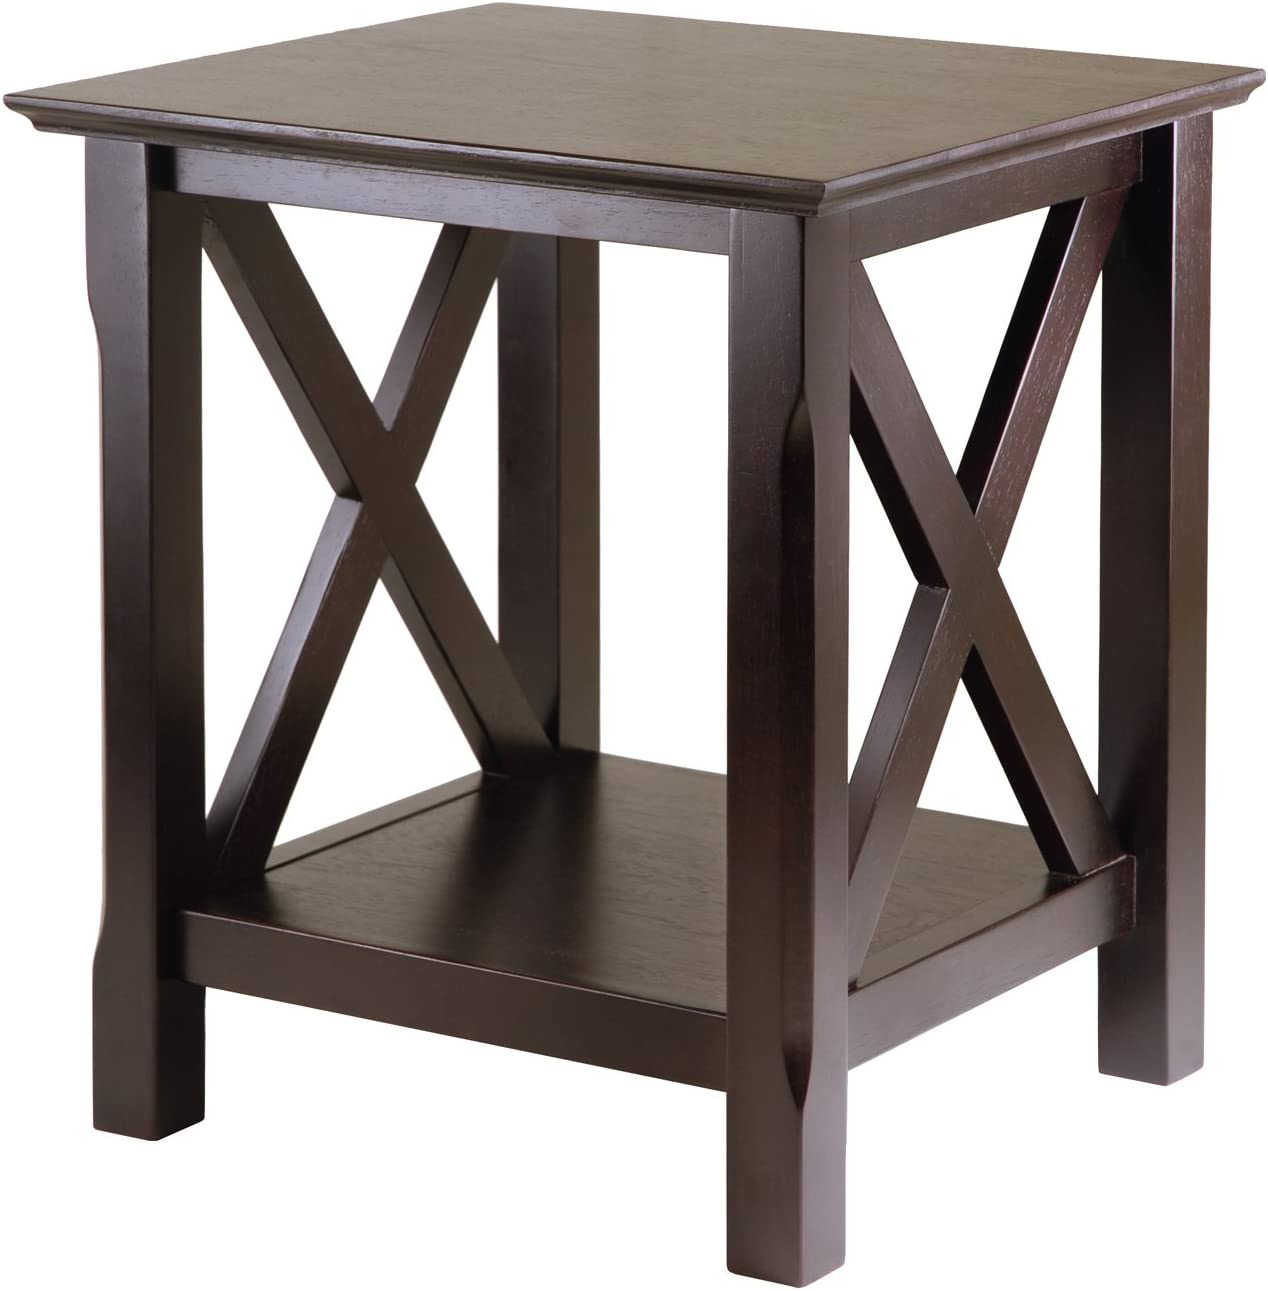 Winsome Wood 40420 Xola Occasional Table, Cappuccino